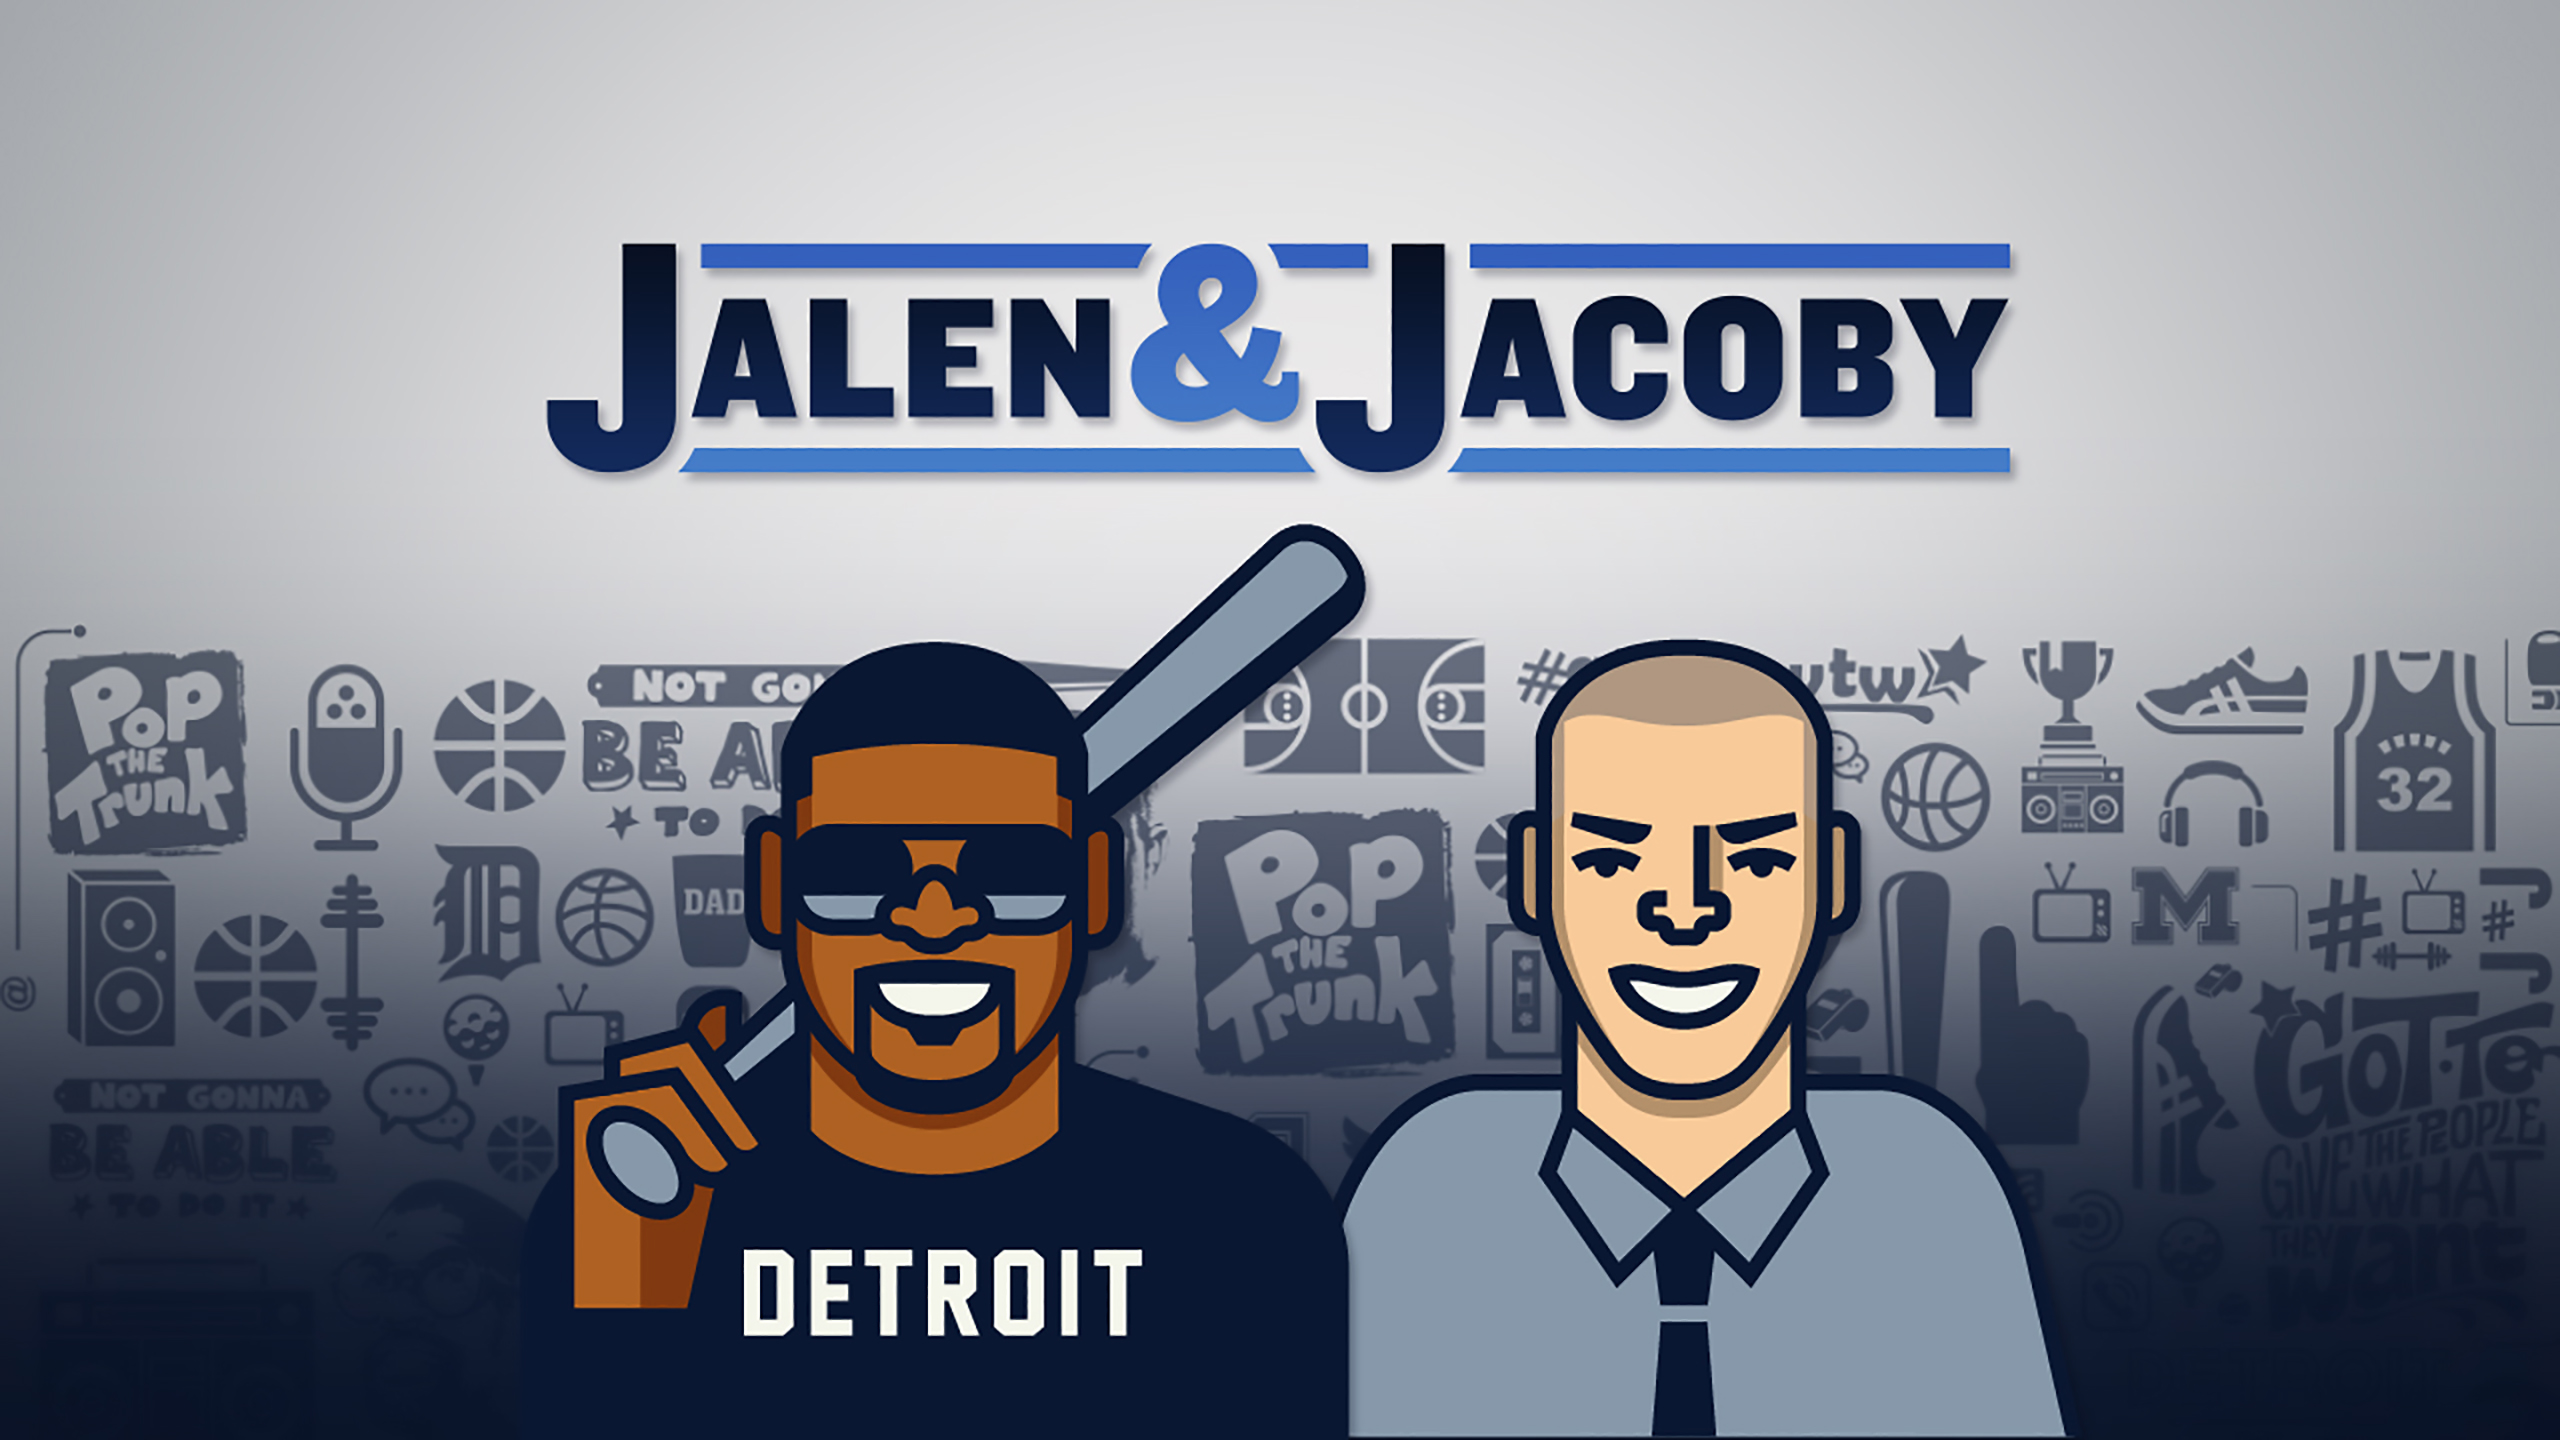 Wed, 9/19 - Jalen & Jacoby